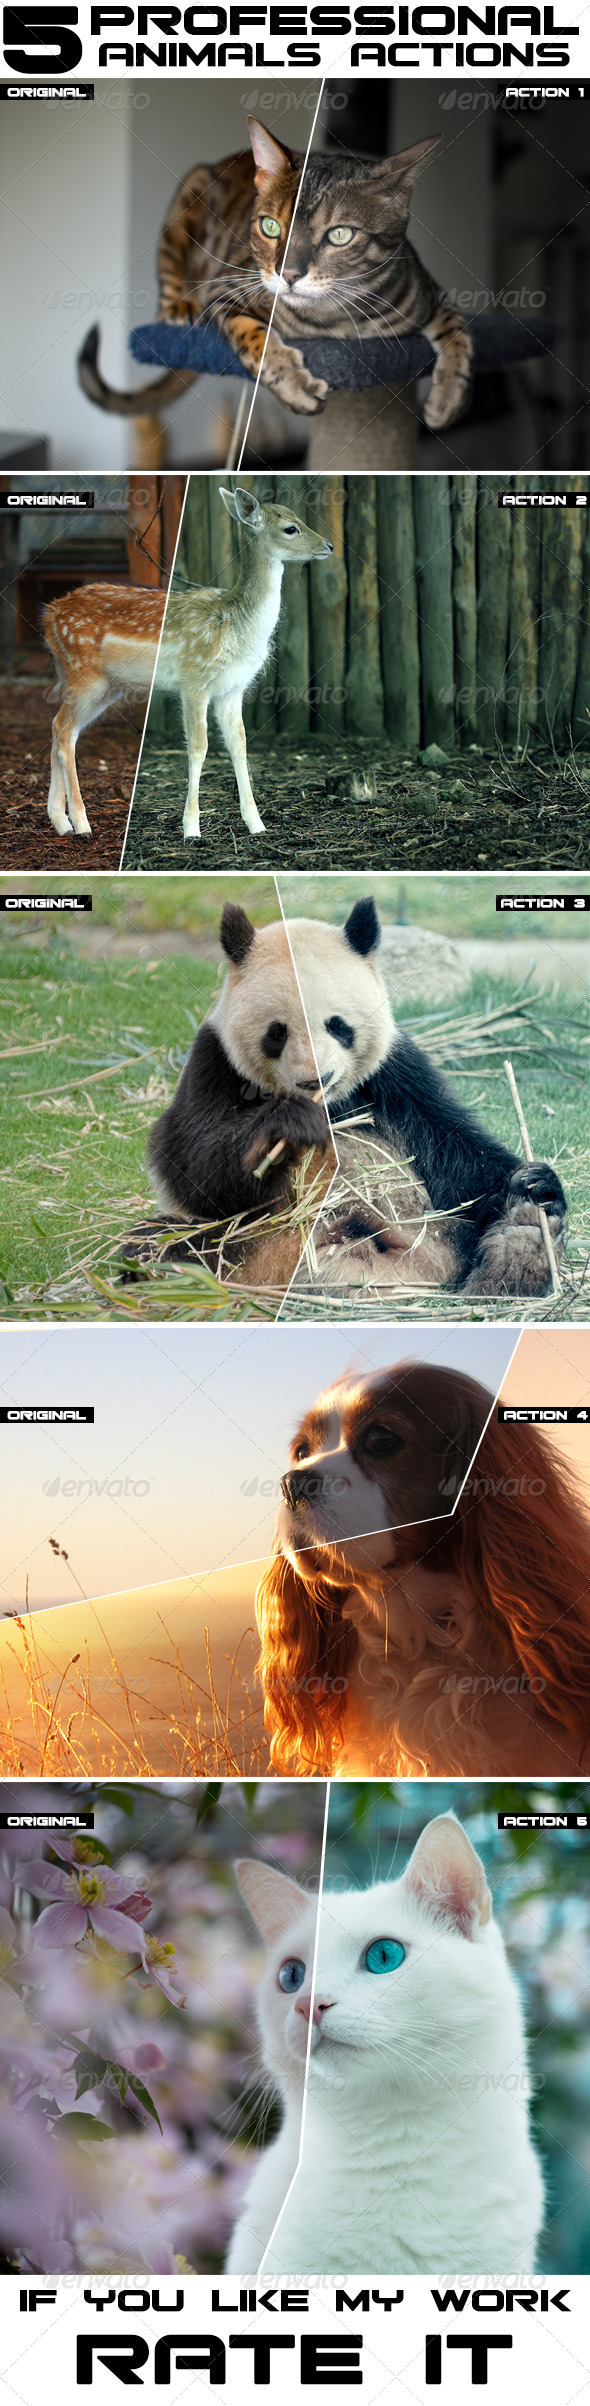 GraphicRiver 5 Professional Animal Photoshop Actions 8017482